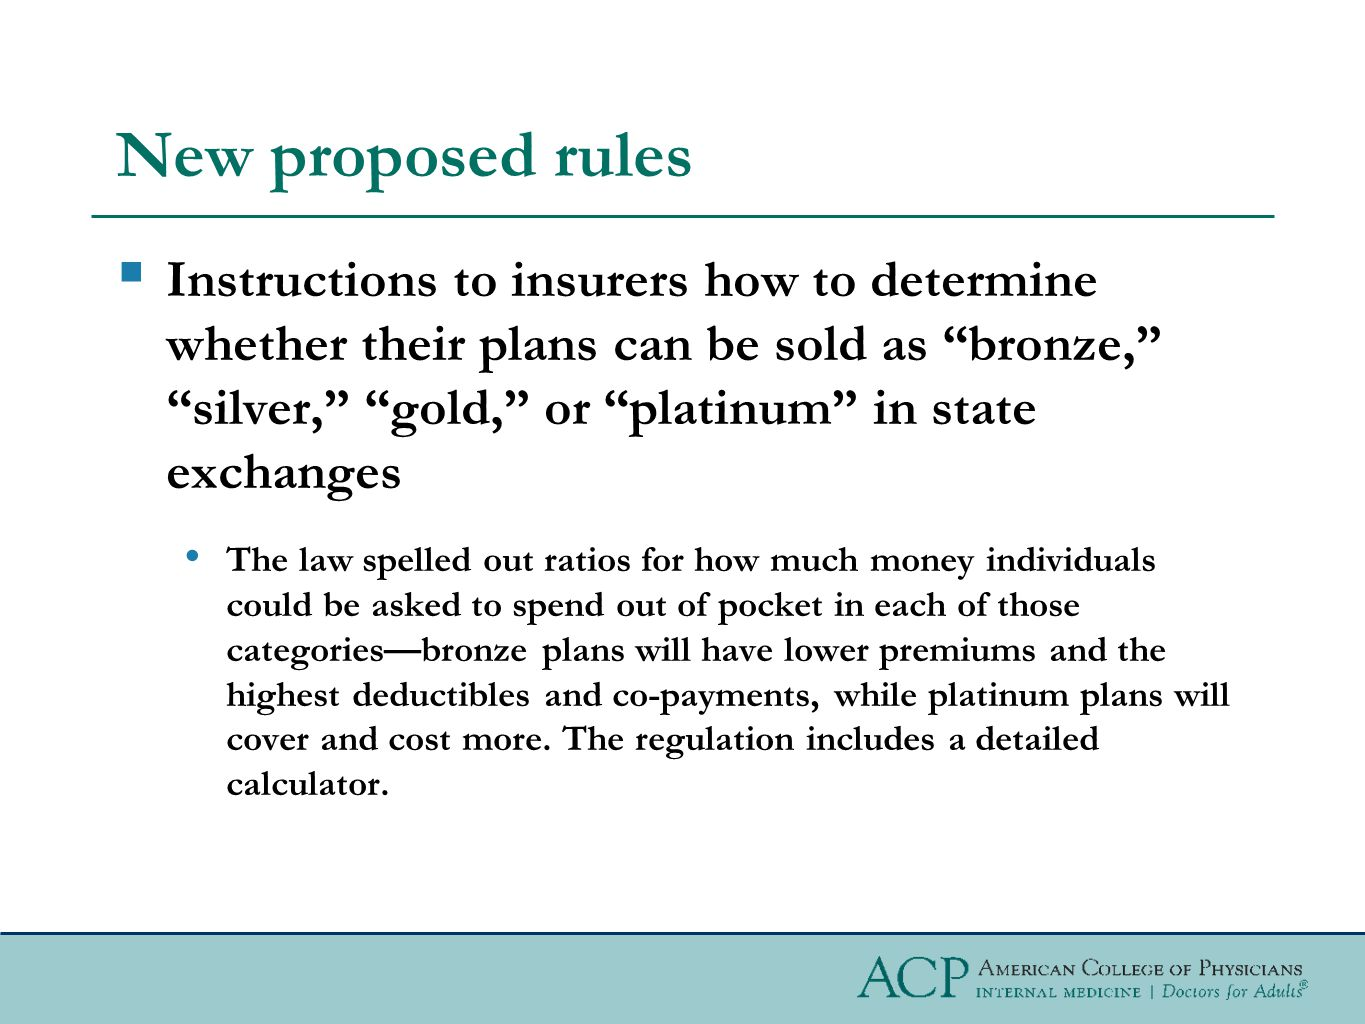 New proposed rules  Instructions to insurers how to determine whether their plans can be sold as bronze, silver, gold, or platinum in state exchanges The law spelled out ratios for how much money individuals could be asked to spend out of pocket in each of those categories—bronze plans will have lower premiums and the highest deductibles and co-payments, while platinum plans will cover and cost more.